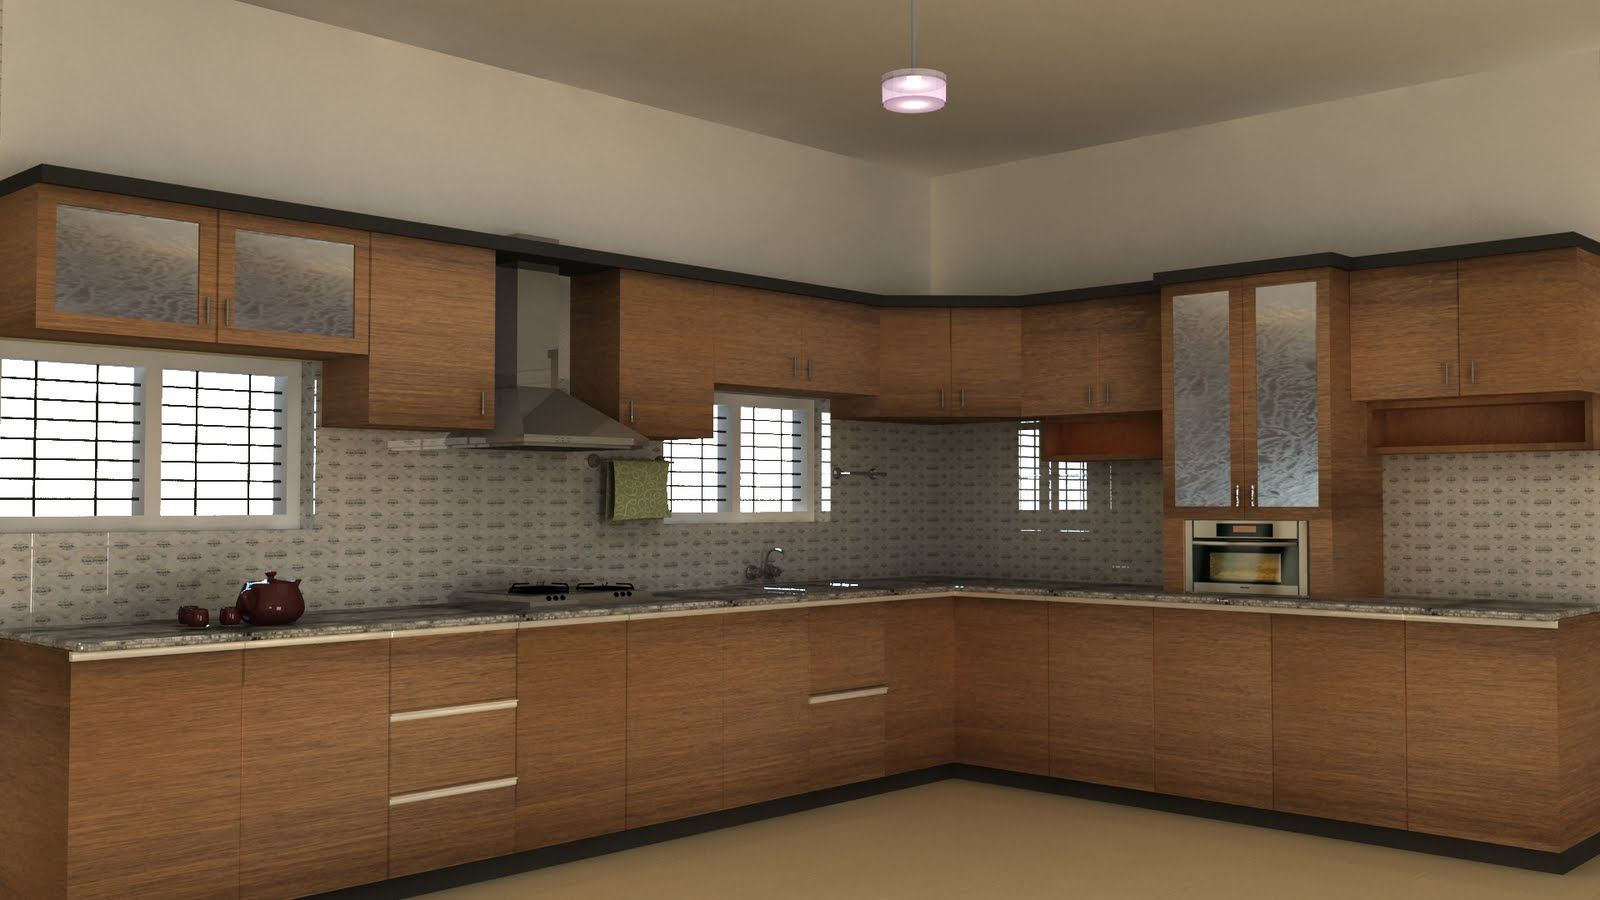 Kitchen cabinet doors in bangalore first time in india architect - Modern Kitchen Cabinets In India Photo